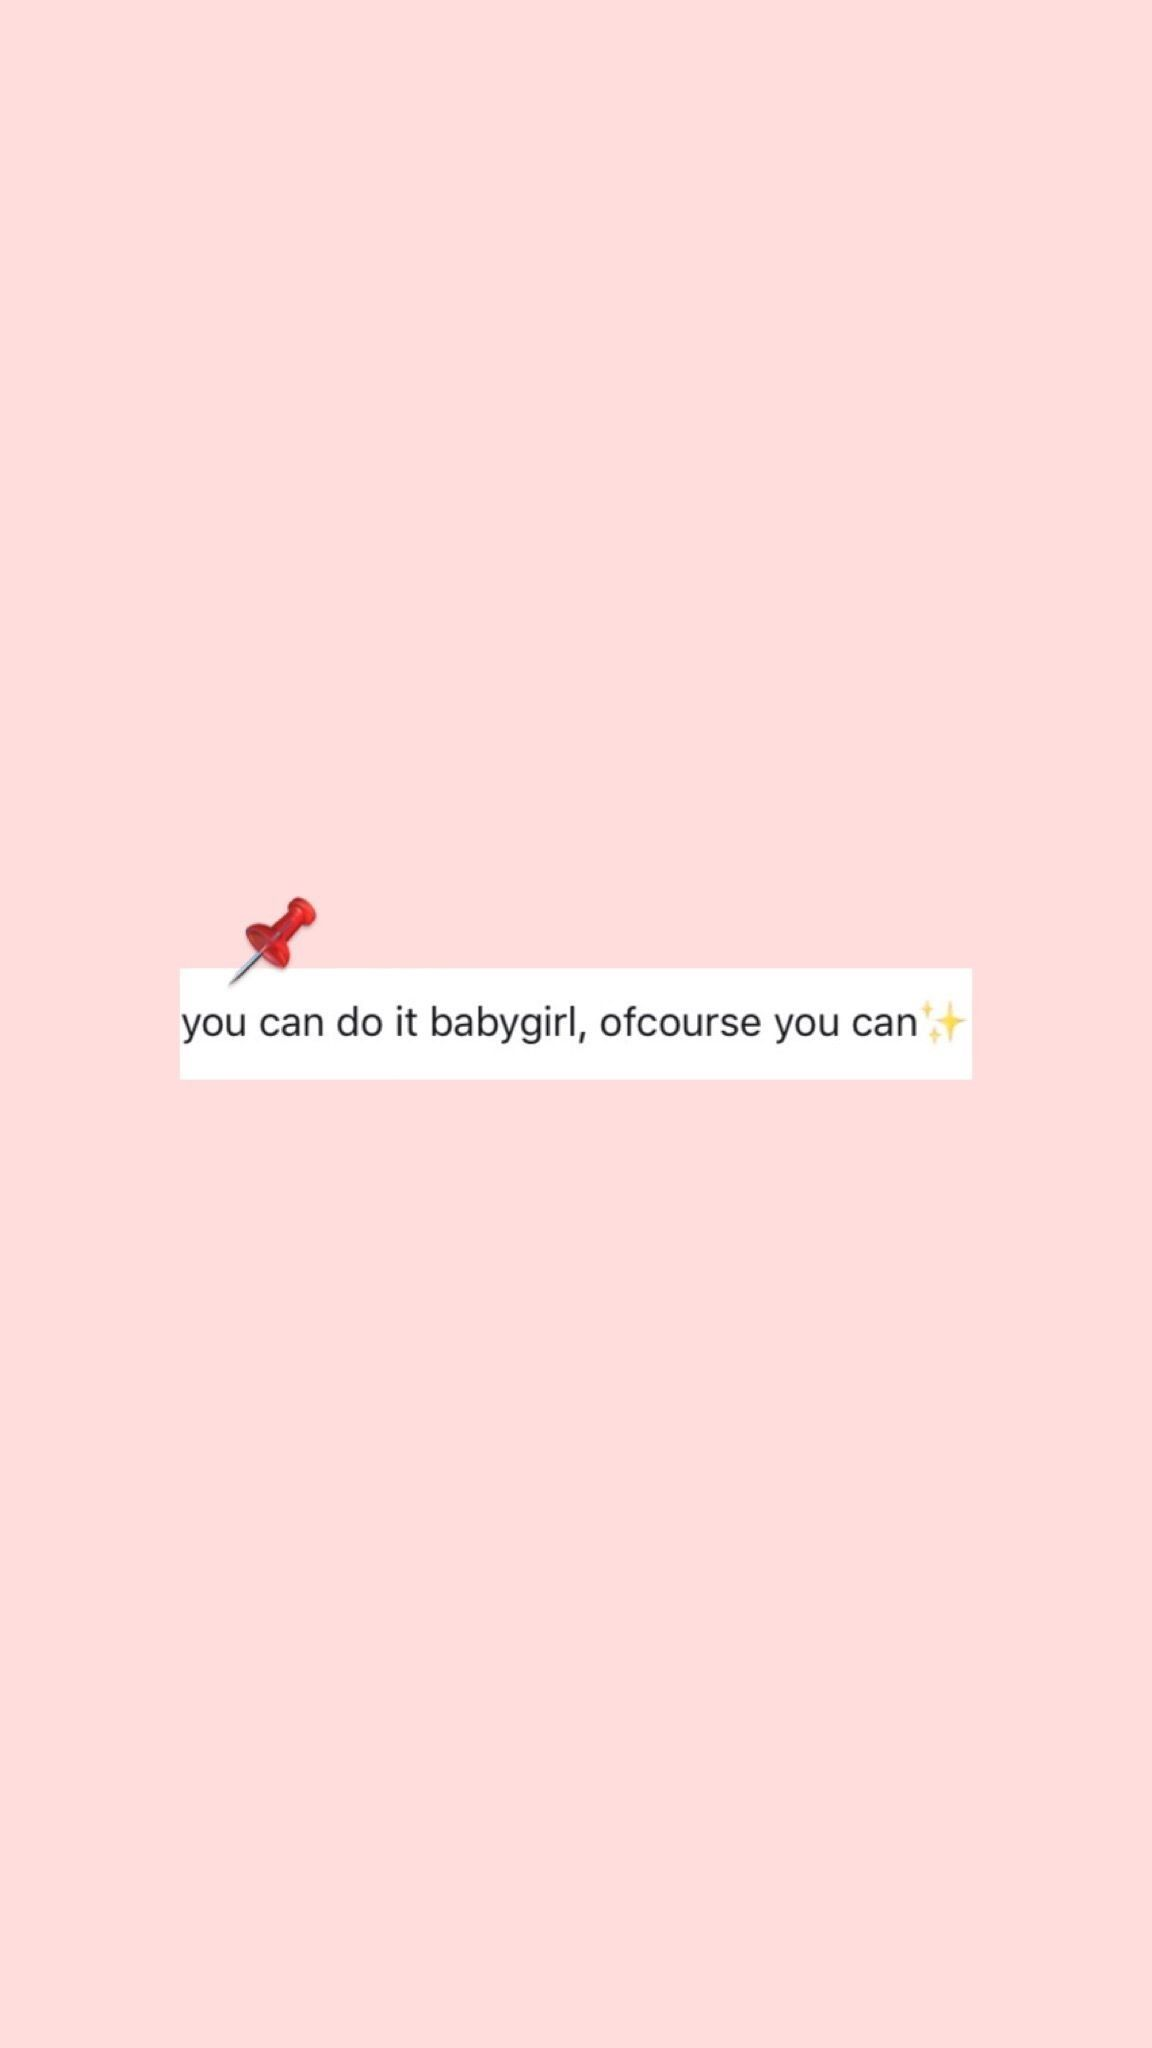 You can do it babygirl. Of course you can. | Quoting | Wallpaper quotes, Quotes, Wallpaper